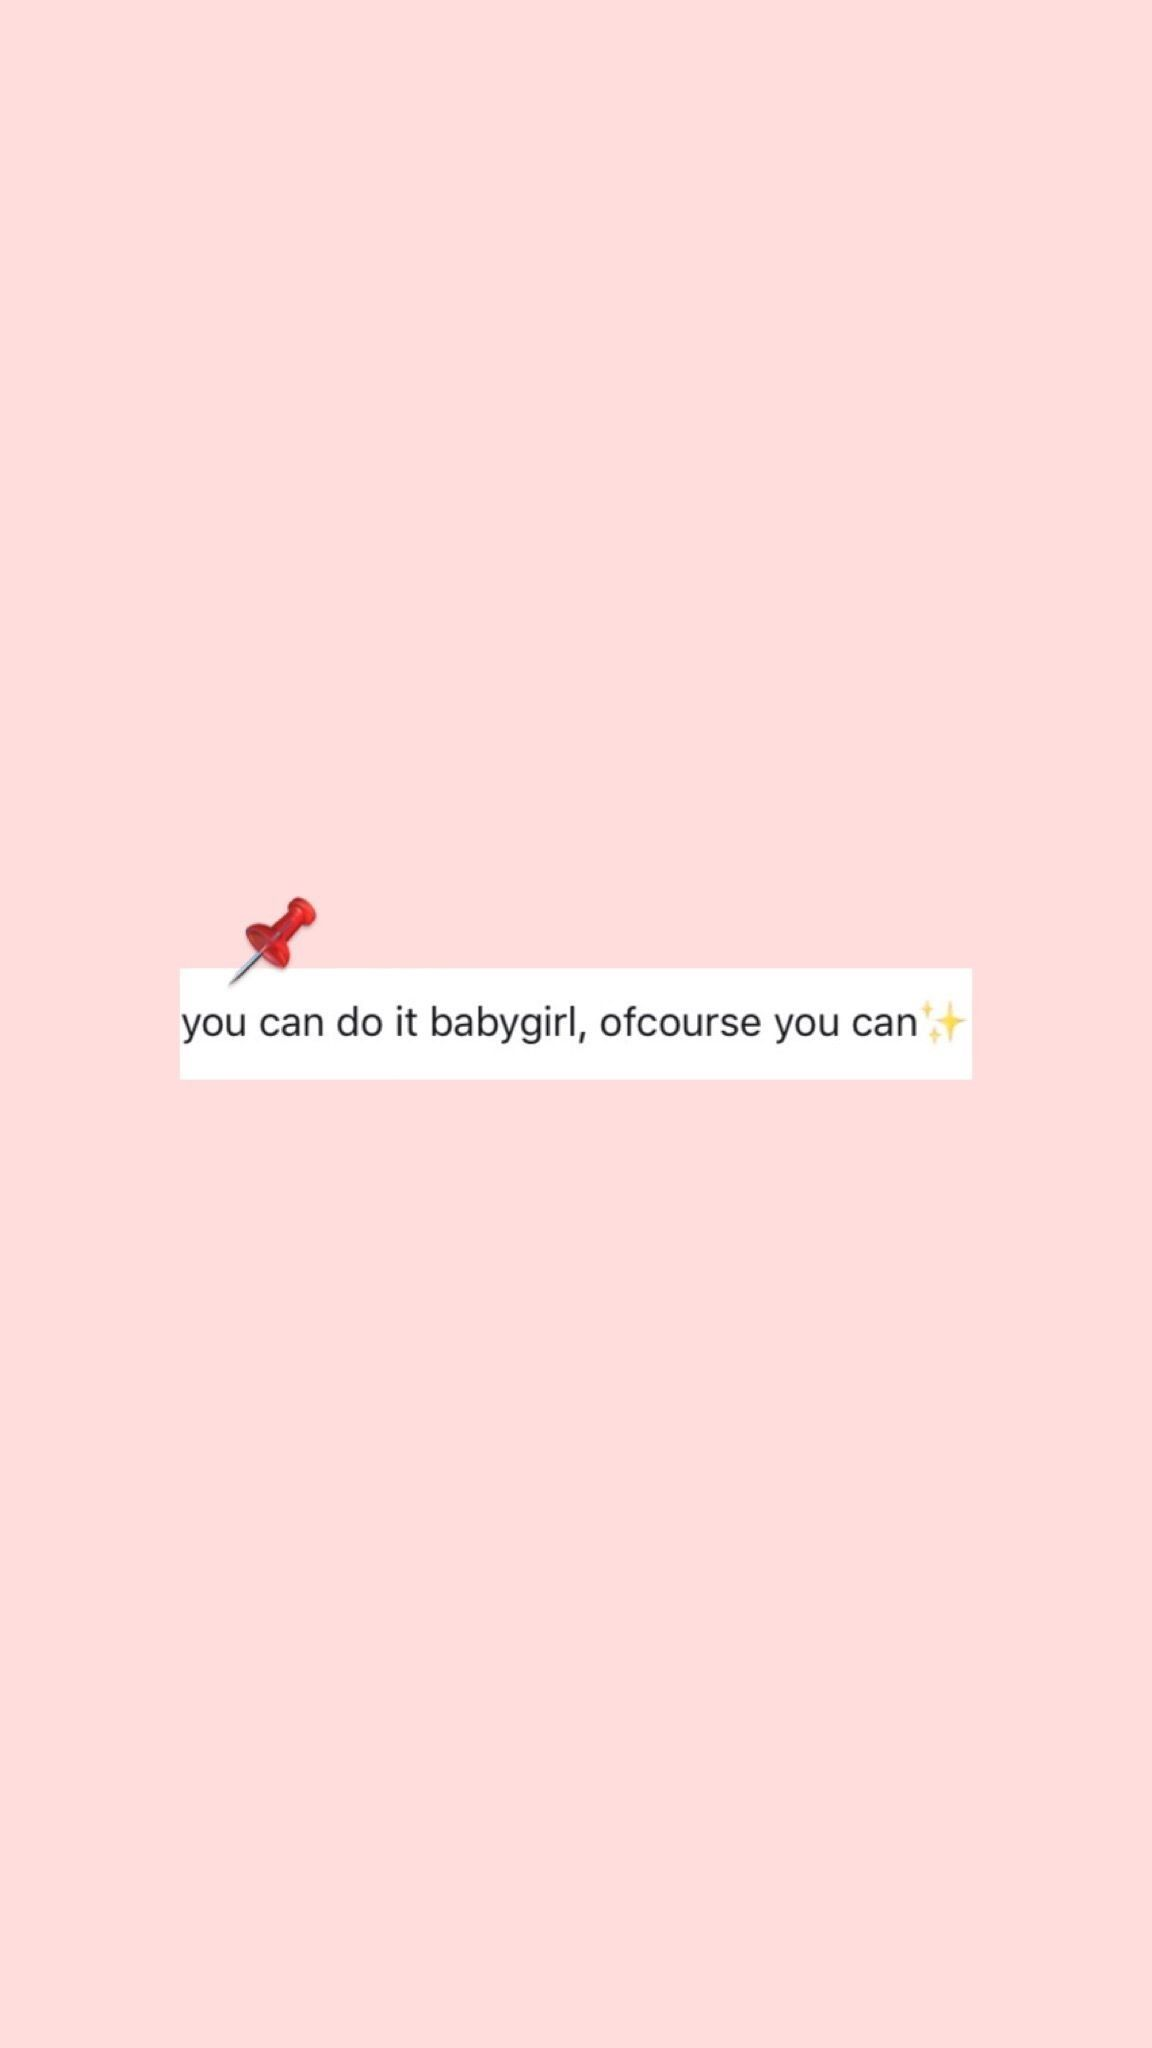 You can do it babygirl. Of course you can. | Quoting | Wallpaper quotes, Quotes, Wallpaper